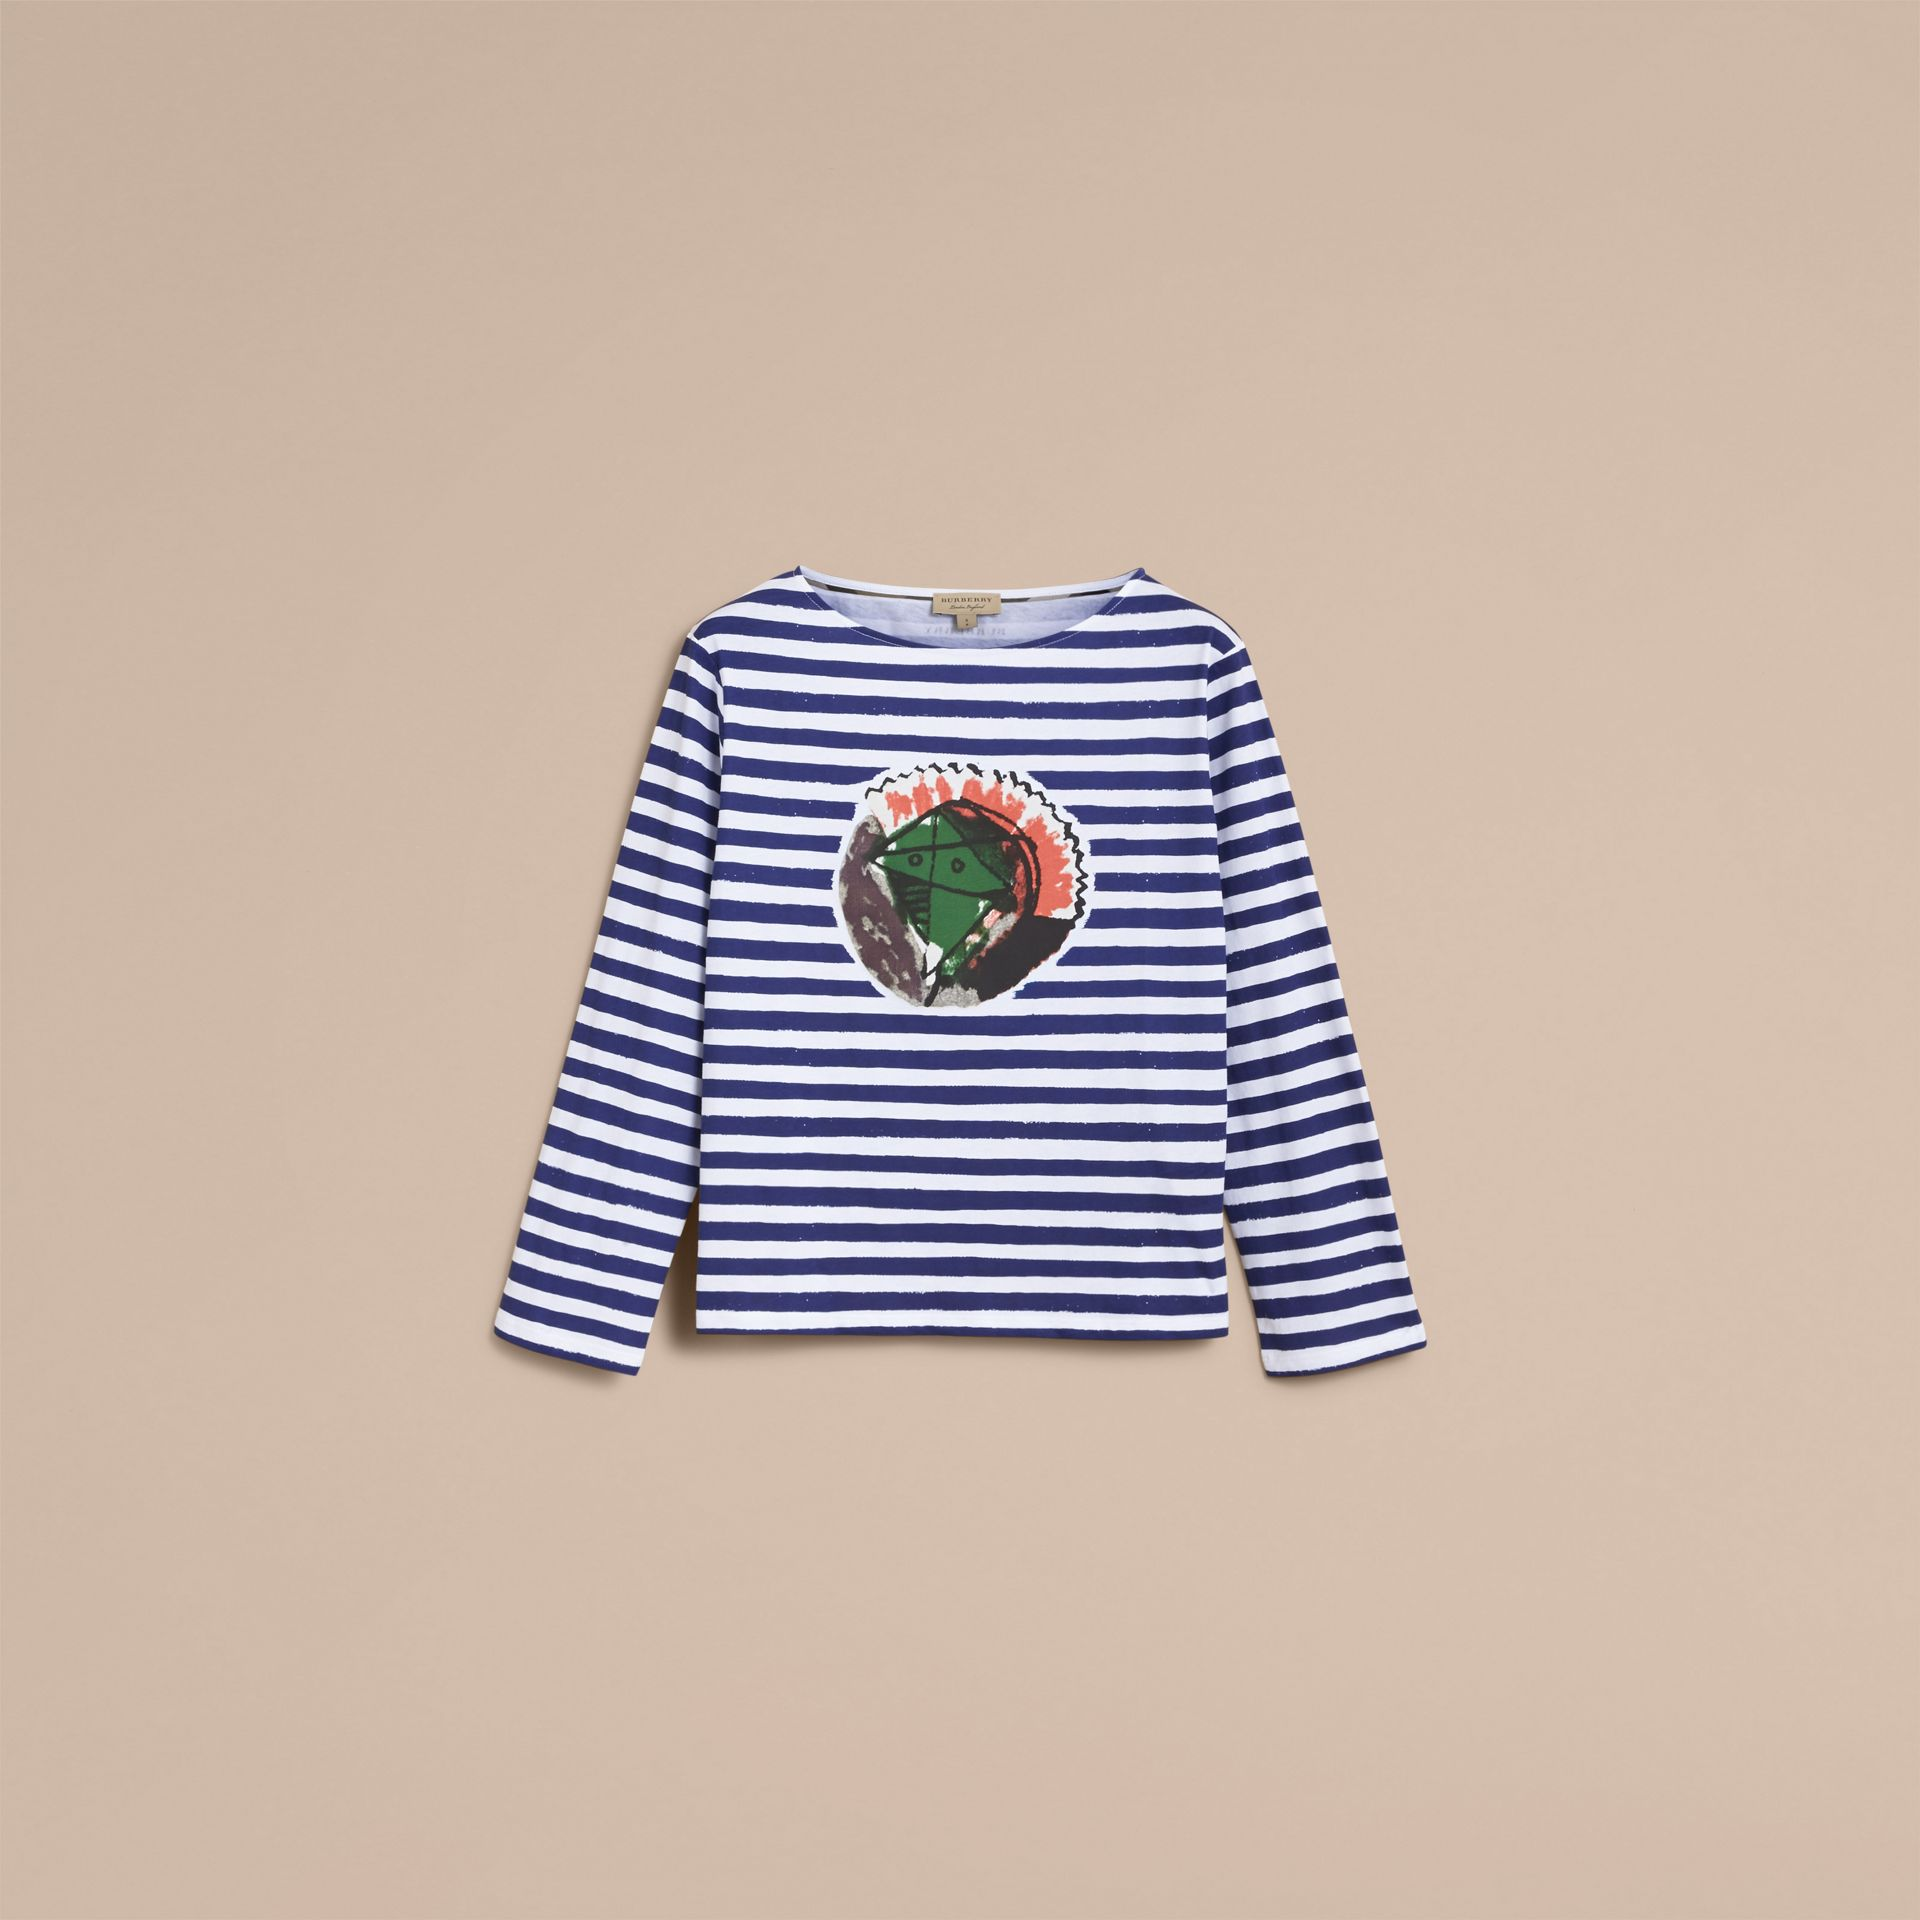 Pallas Heads Print Breton Stripe Jersey Top in Ink Blue/white - Women | Burberry - gallery image 4